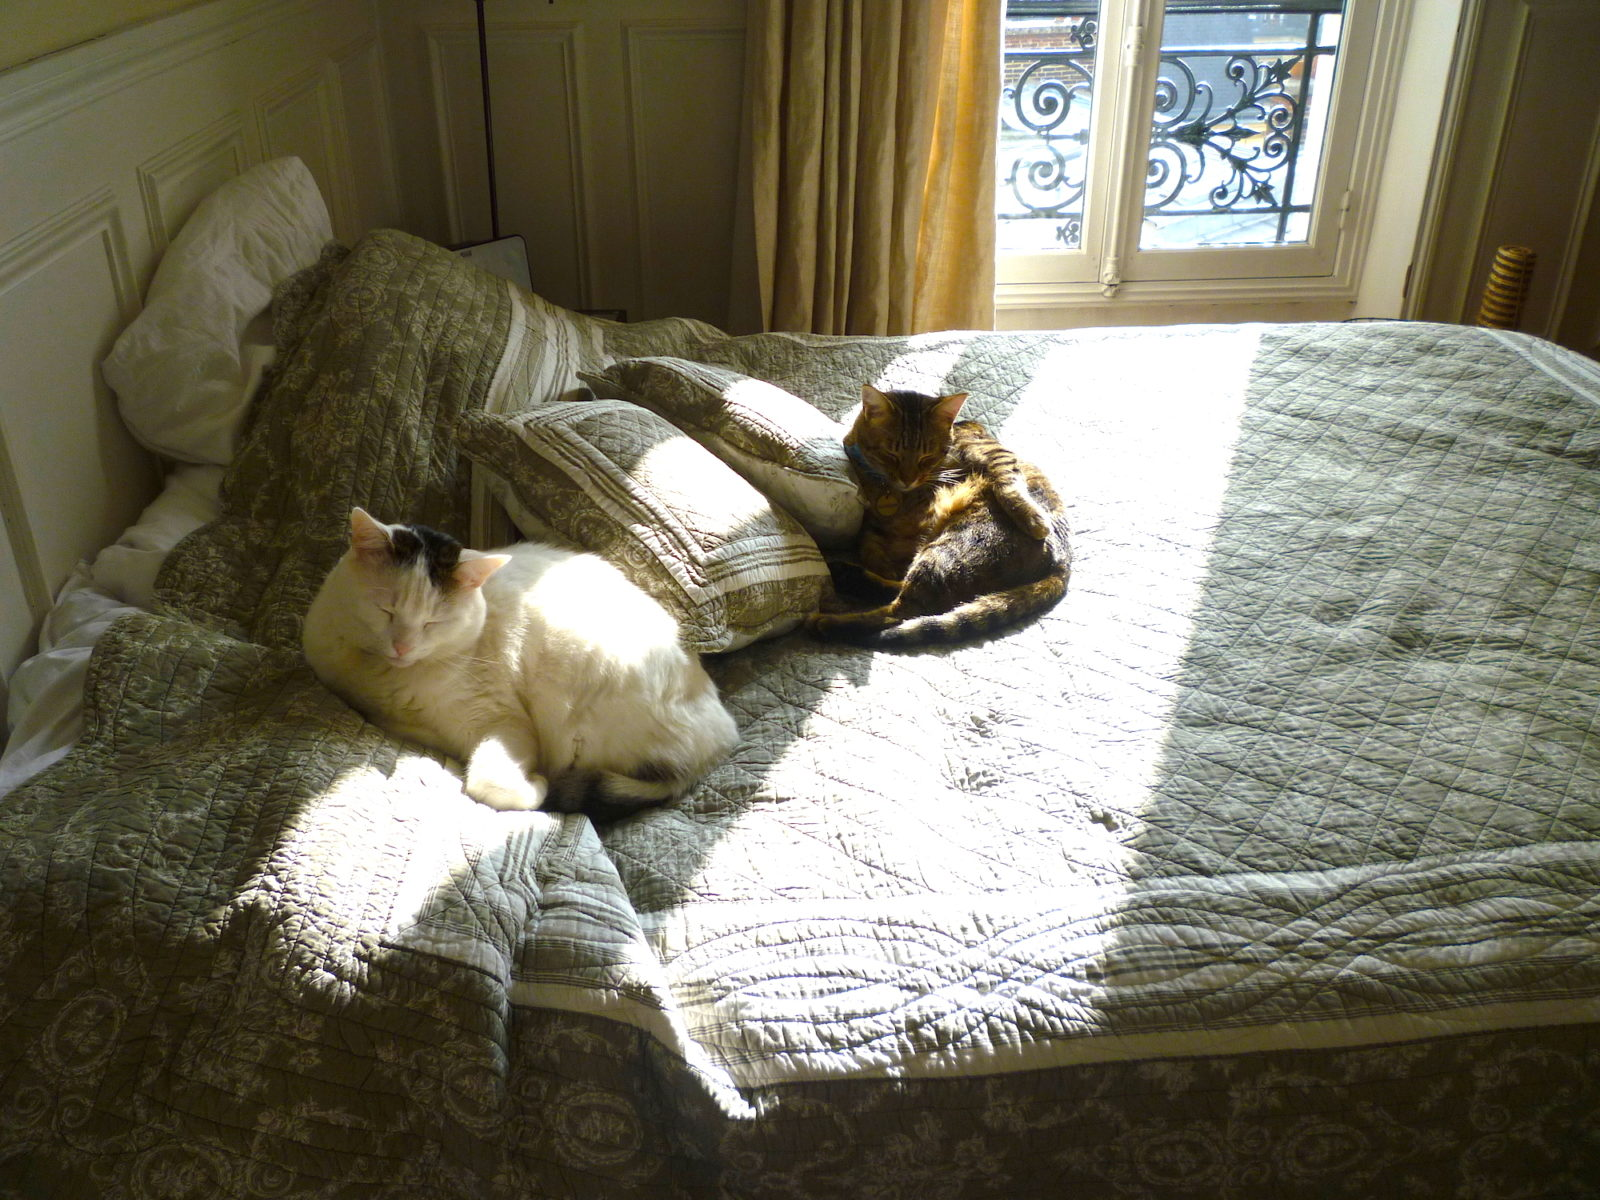 A sleeping fat fluffy white cat and smaller brown cat on a bed in streams of sunshine coming through the window of a Paris apartment.